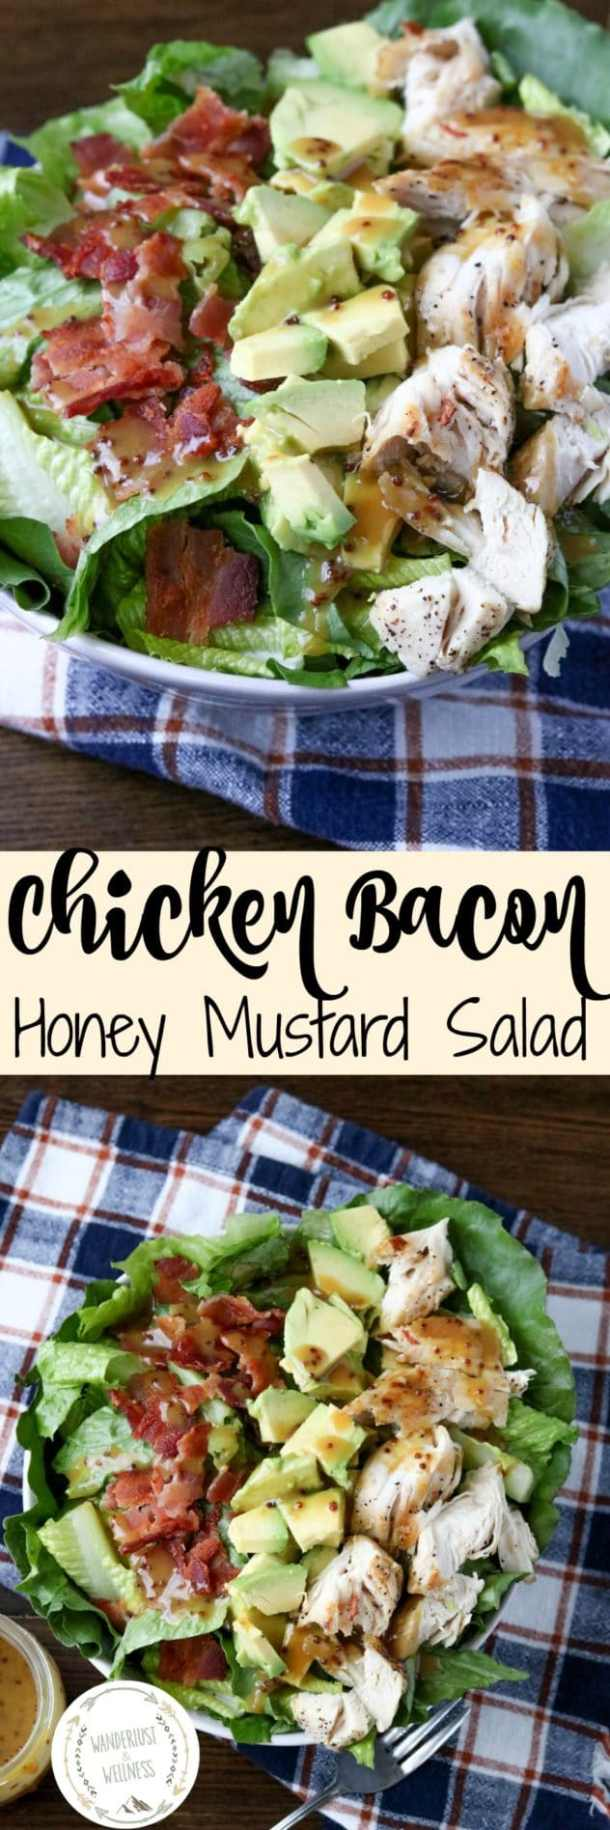 Chicken Bacon Honey Mustard Salad